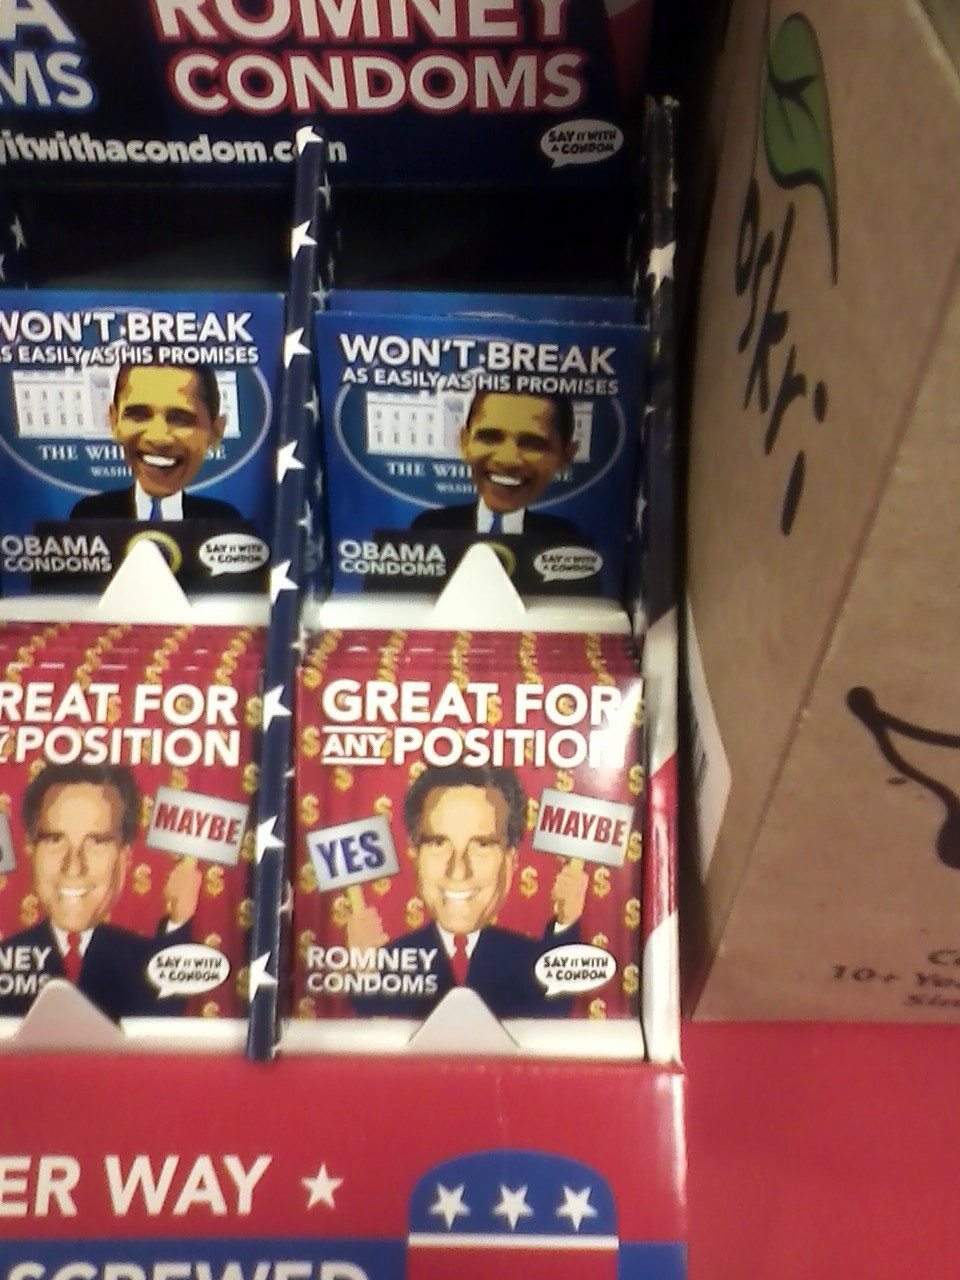 Presidential candidate condoms perfect for whichever way you get screwed this November.